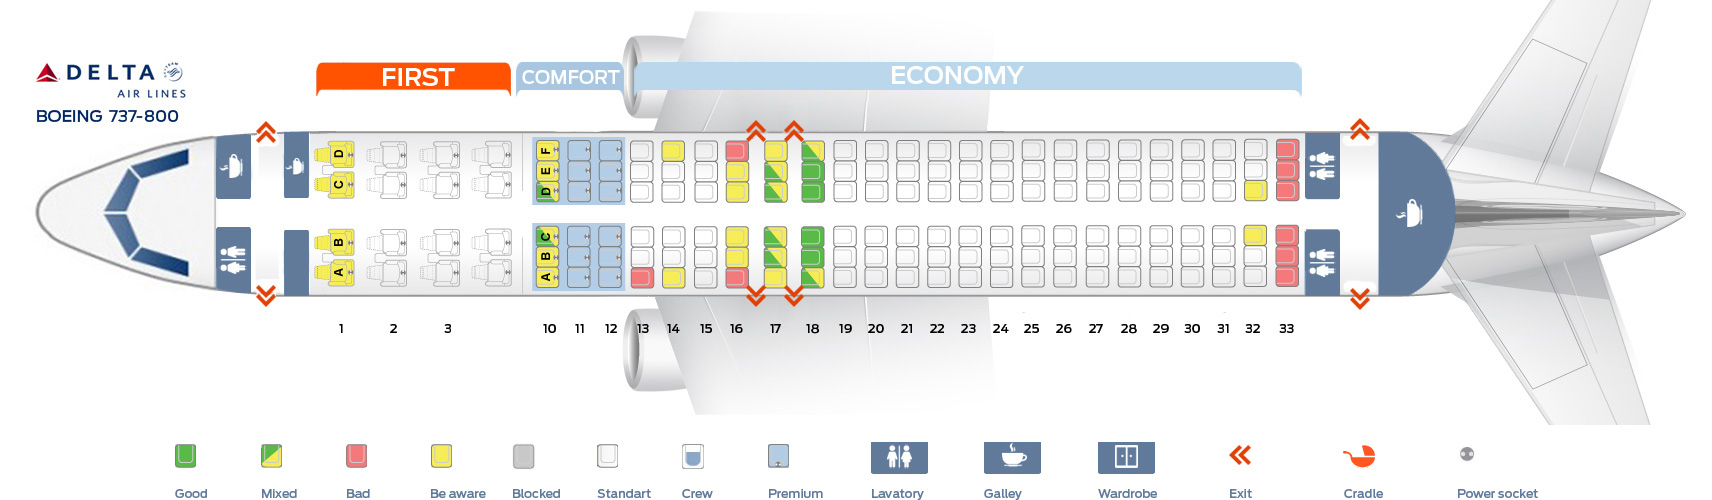 Seat_map_Delta_Airlines_Boeing_737-800